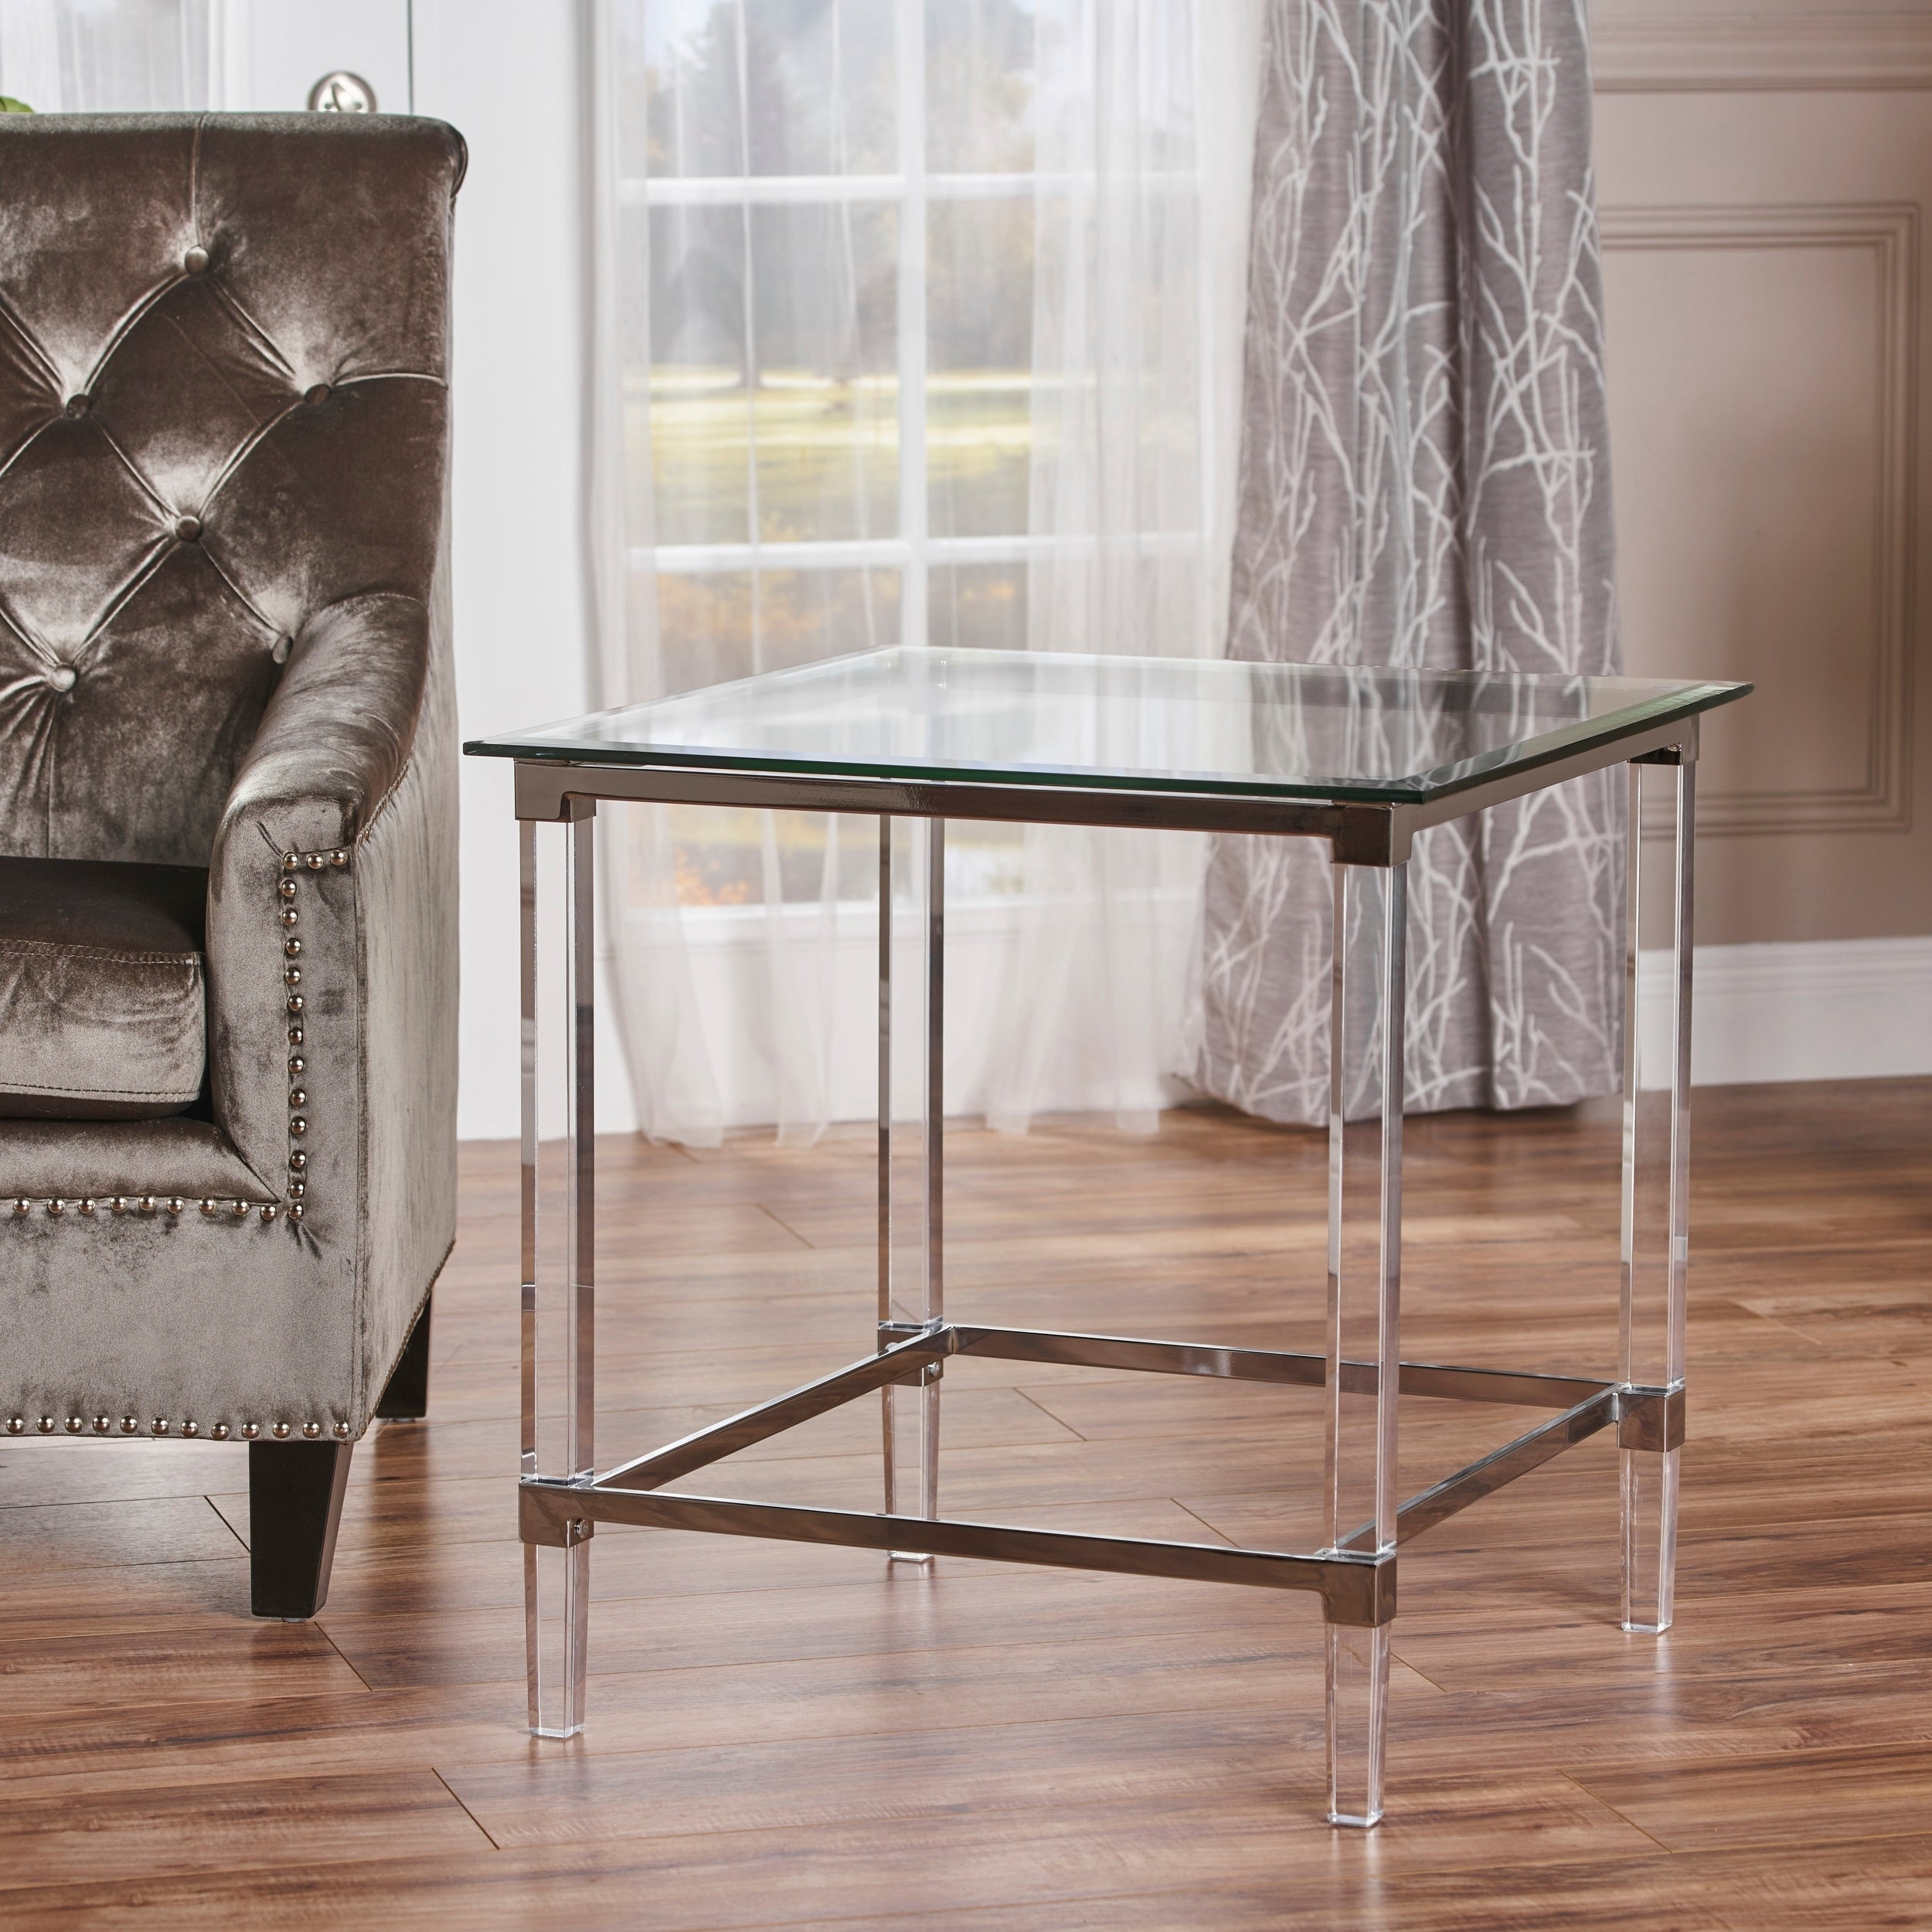 orianna square glass end table christopher knight home outdoor patio swing victorian nightstand console furniture toronto wooden coffee with stools underneath universal limited